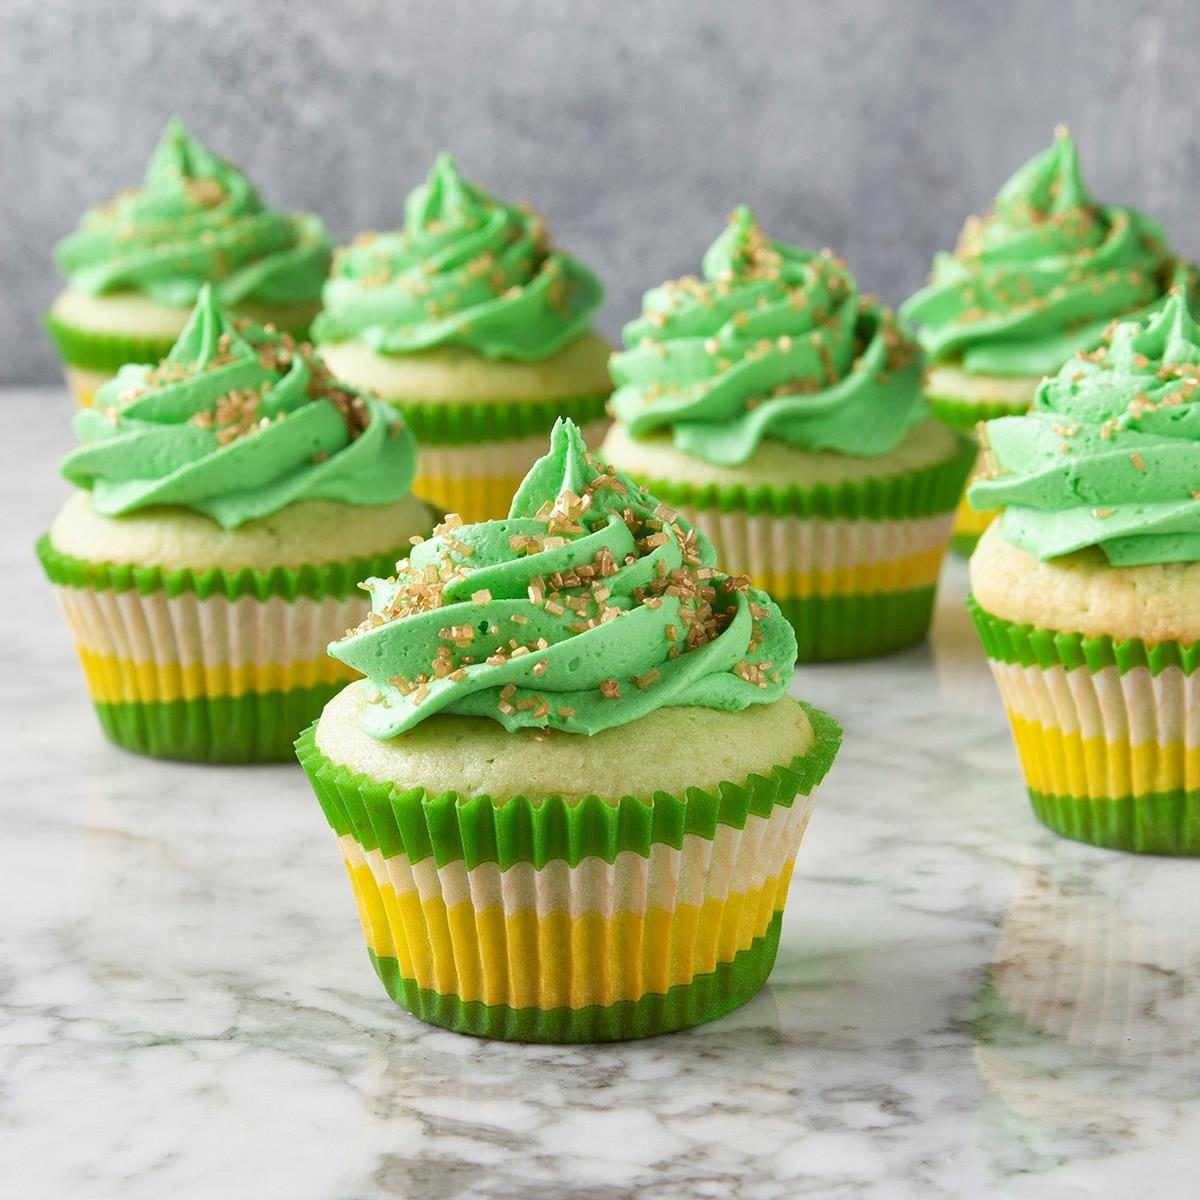 St Patrick S Day Cupcakes Exps Ft19 11917 F 1025 1 2